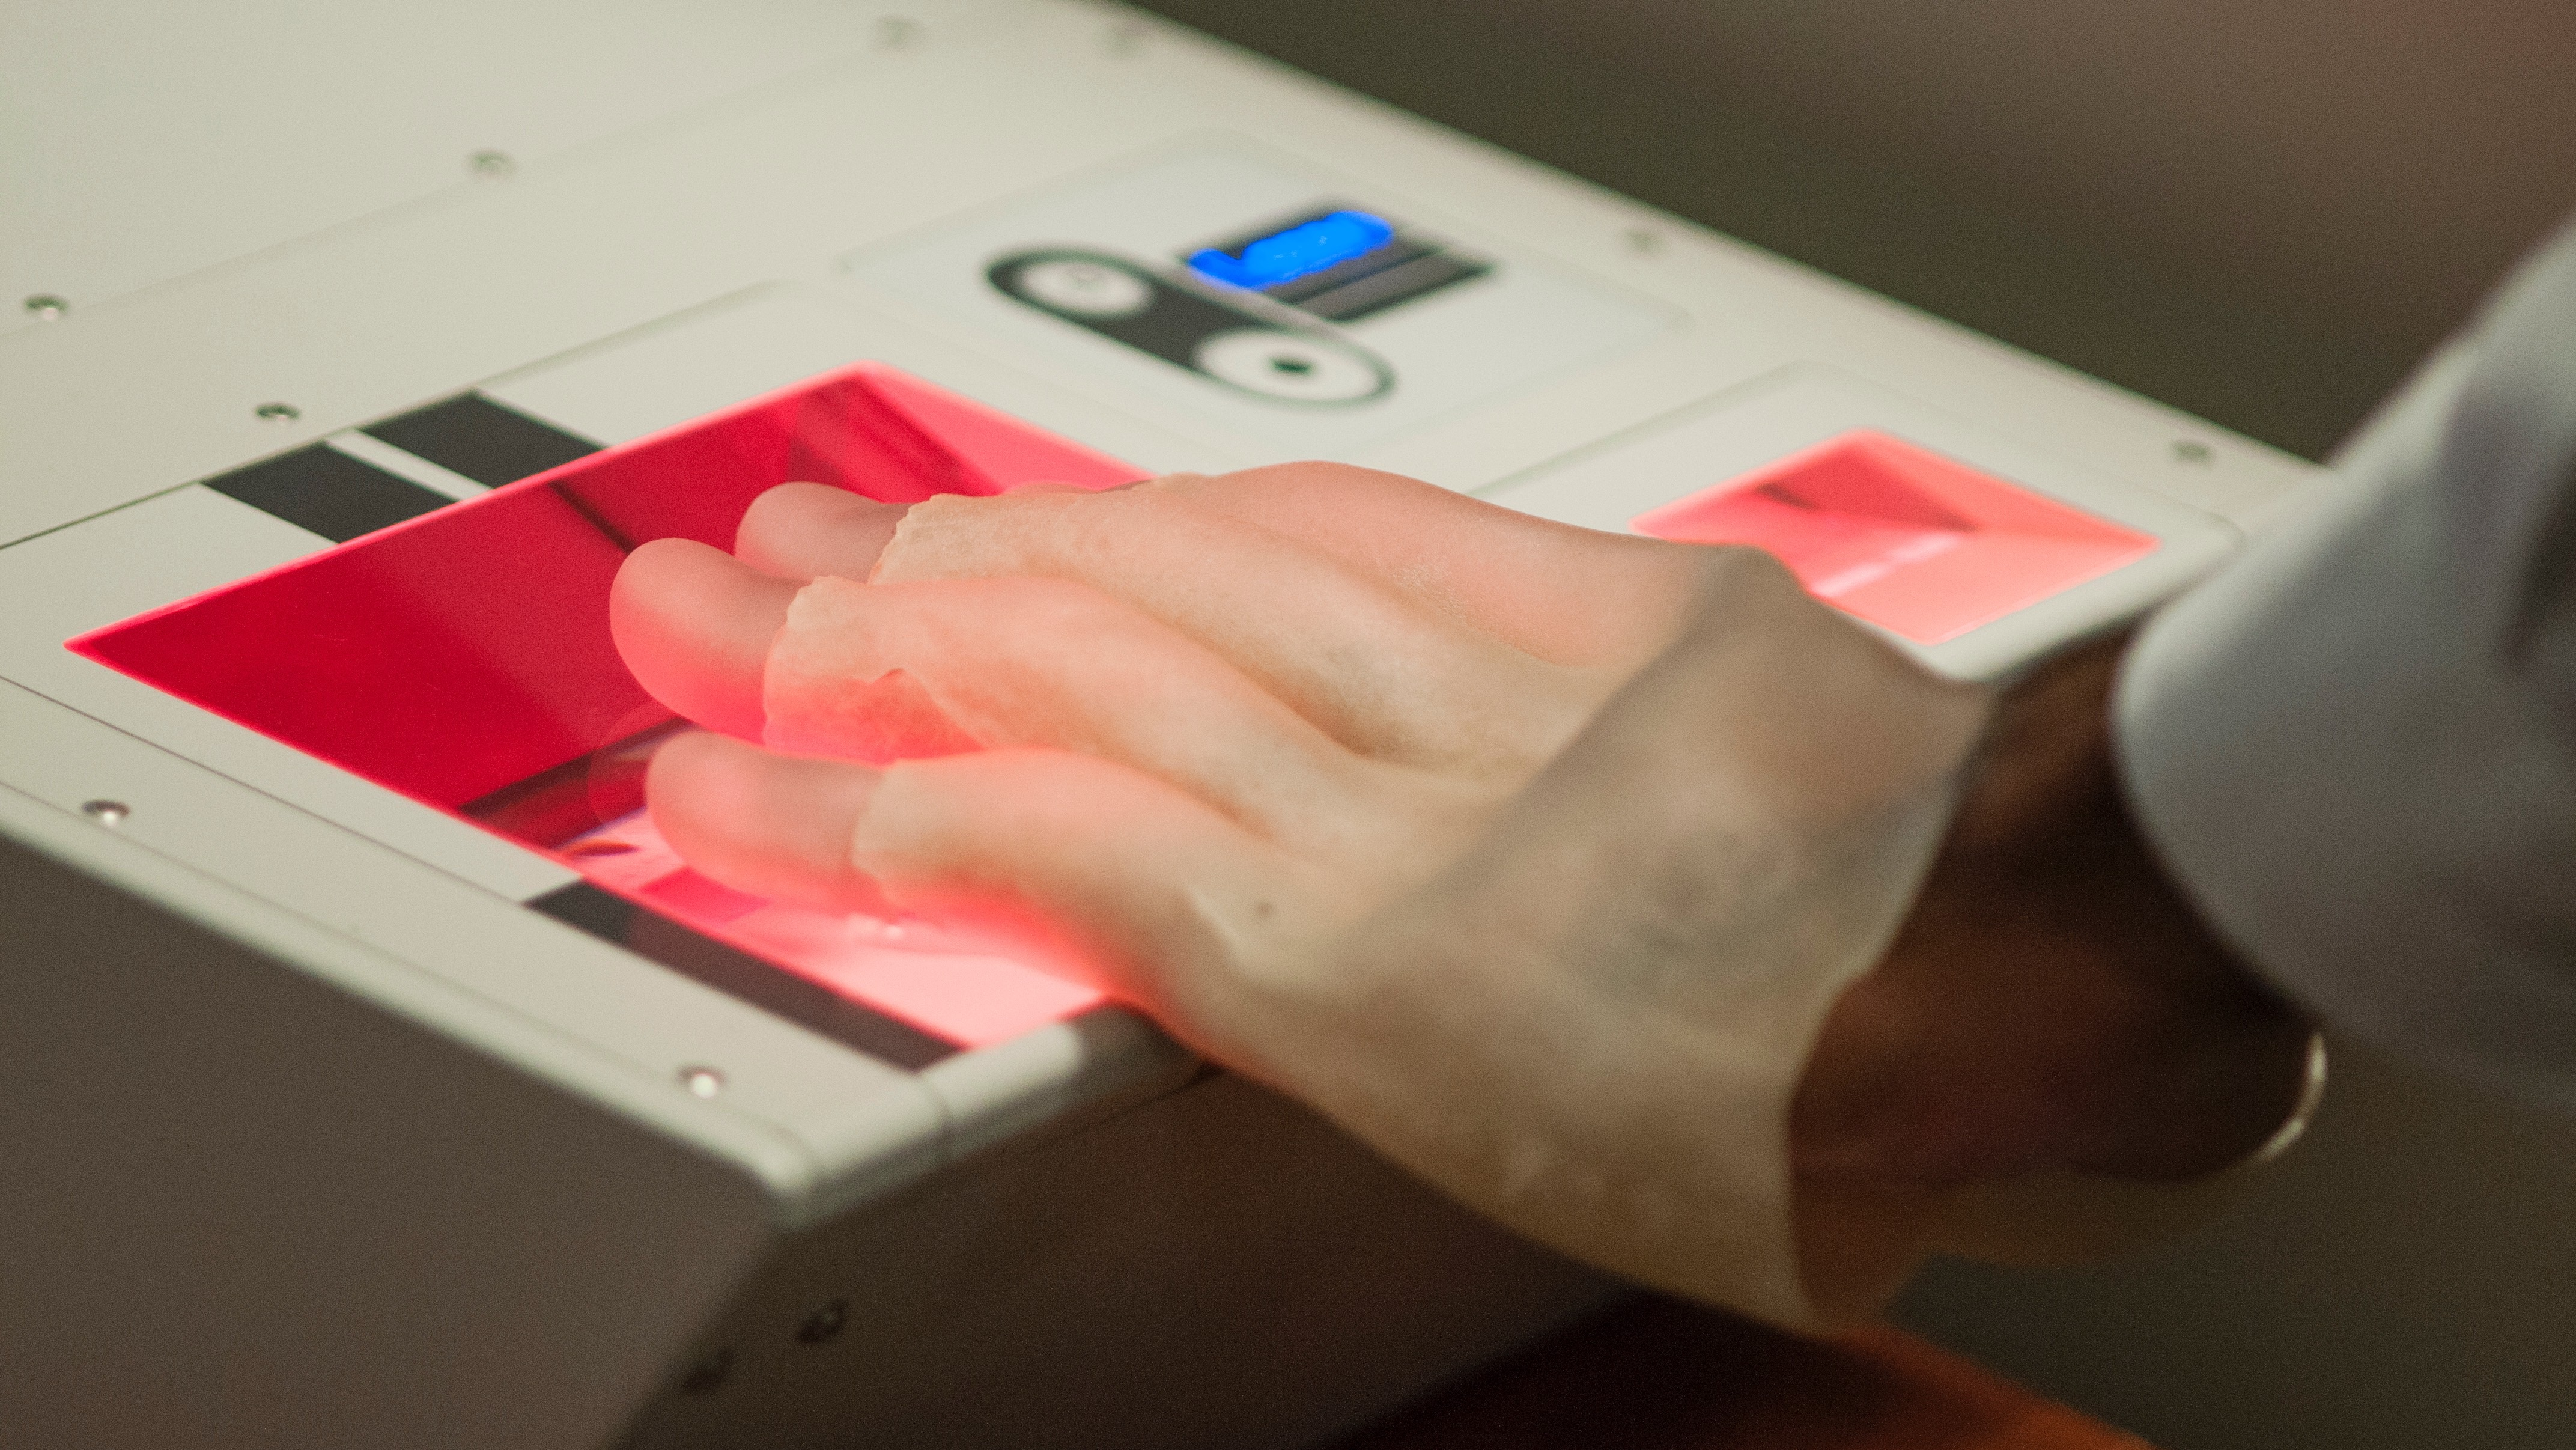 A 3D printed hand makes fingerprint scanners stronger and shows